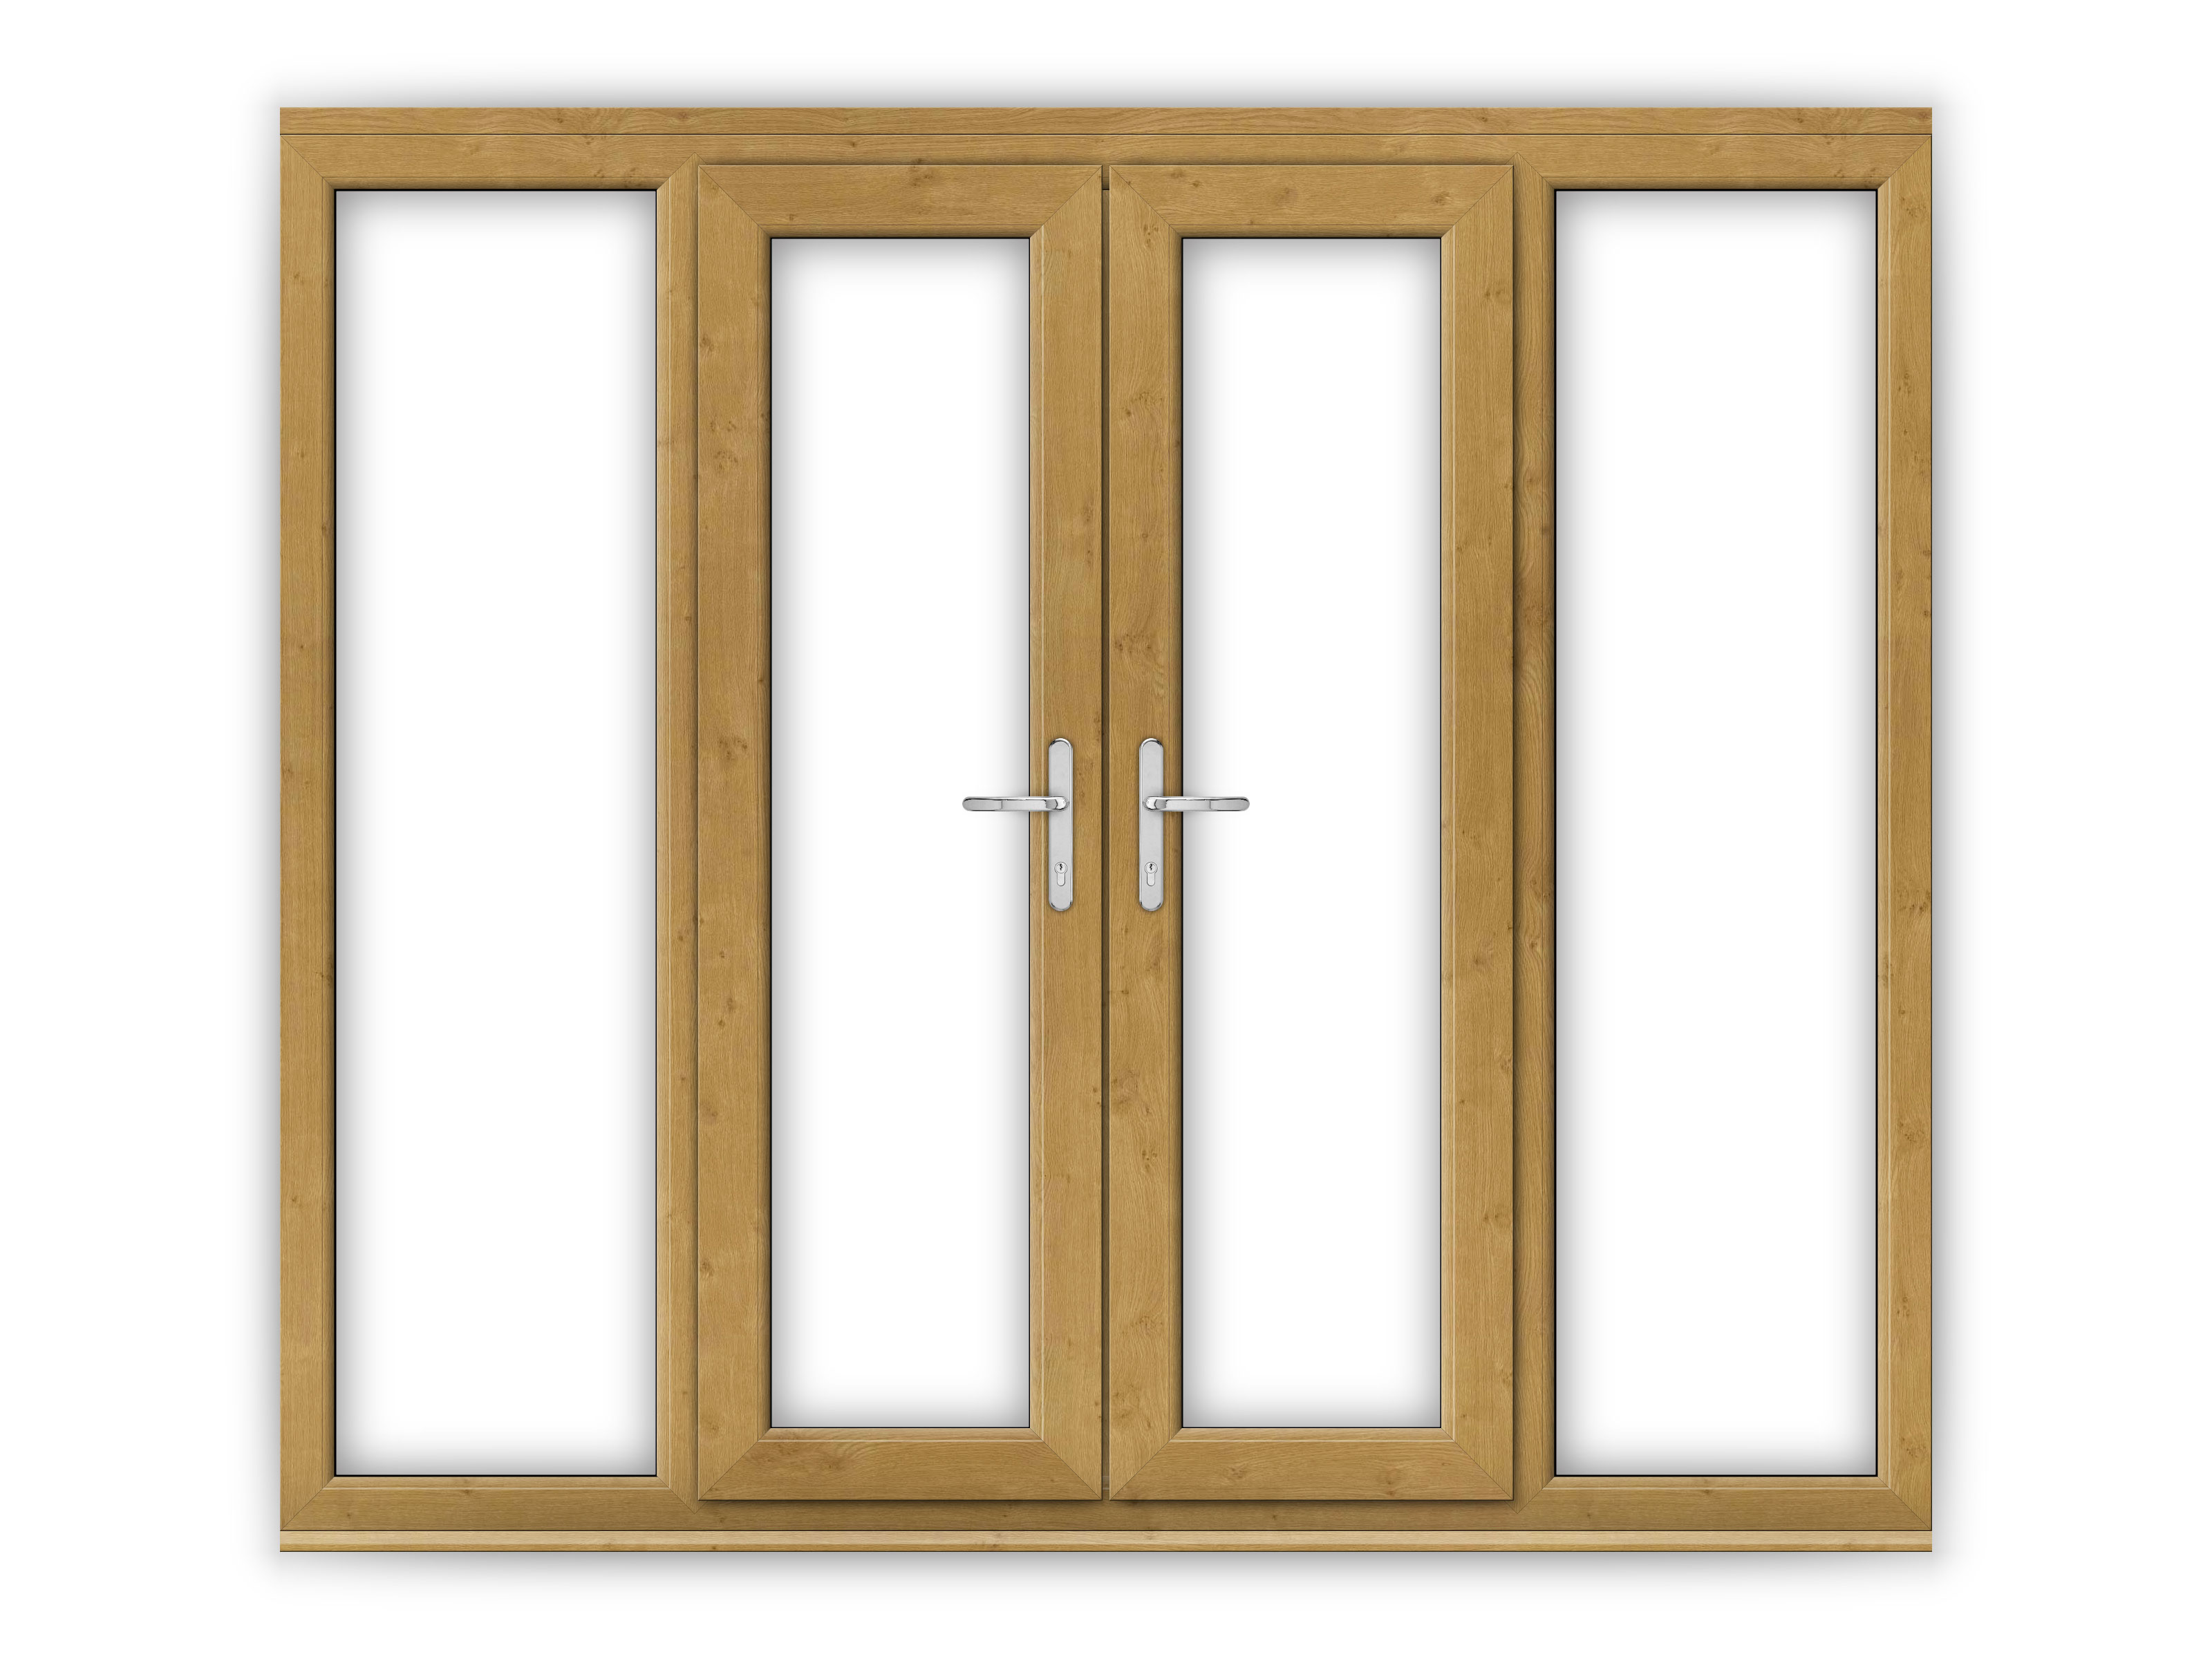 4ft irish oak upvc french doors with wide side panels for Upvc french doors 4ft